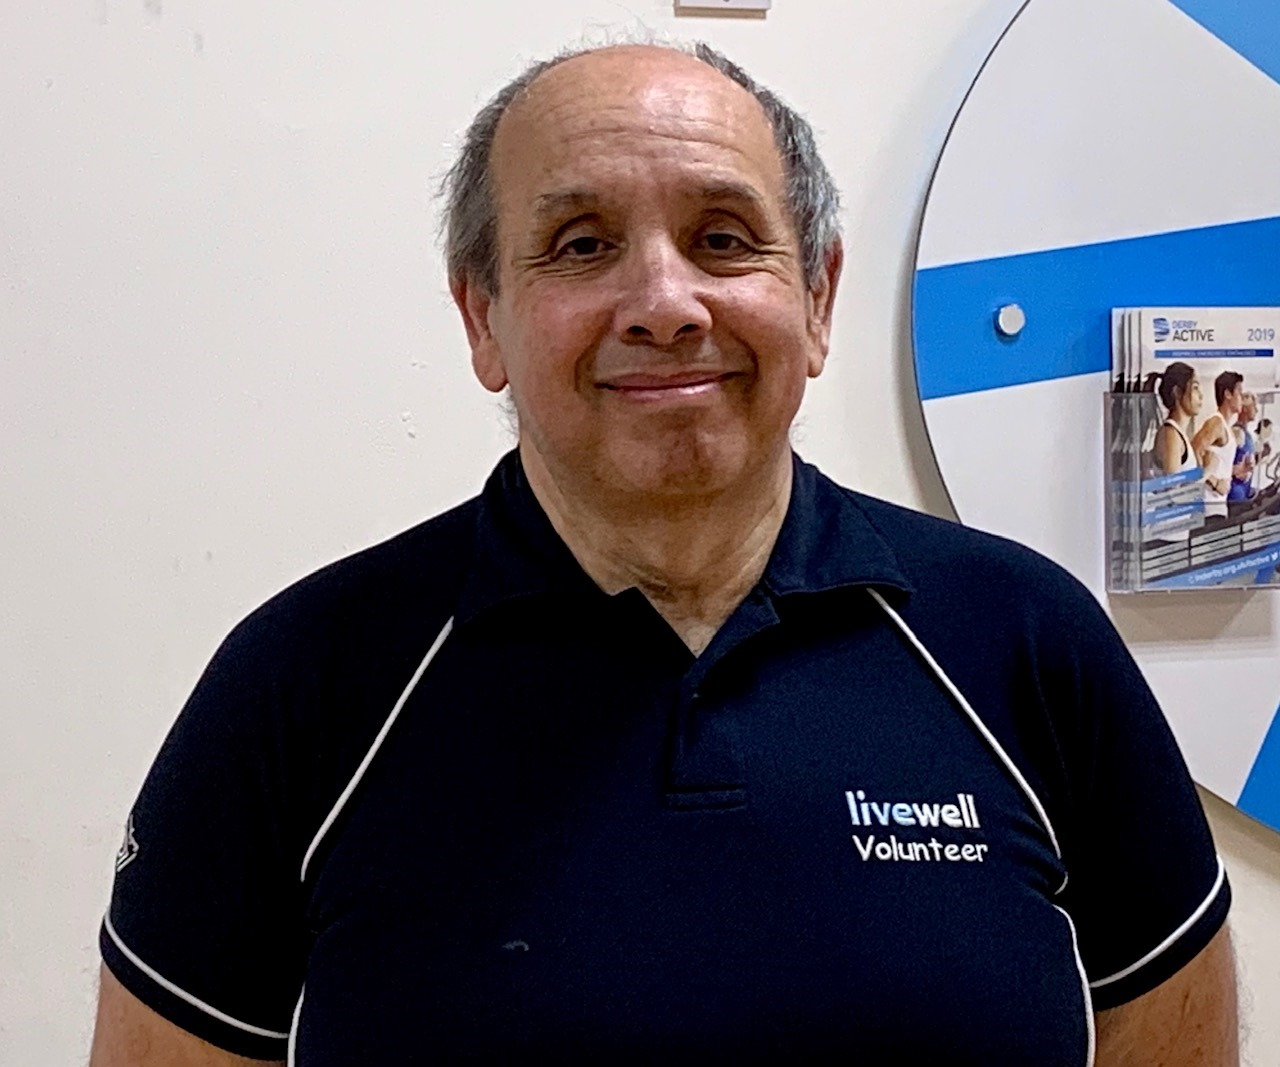 Livewell volunteer Norman